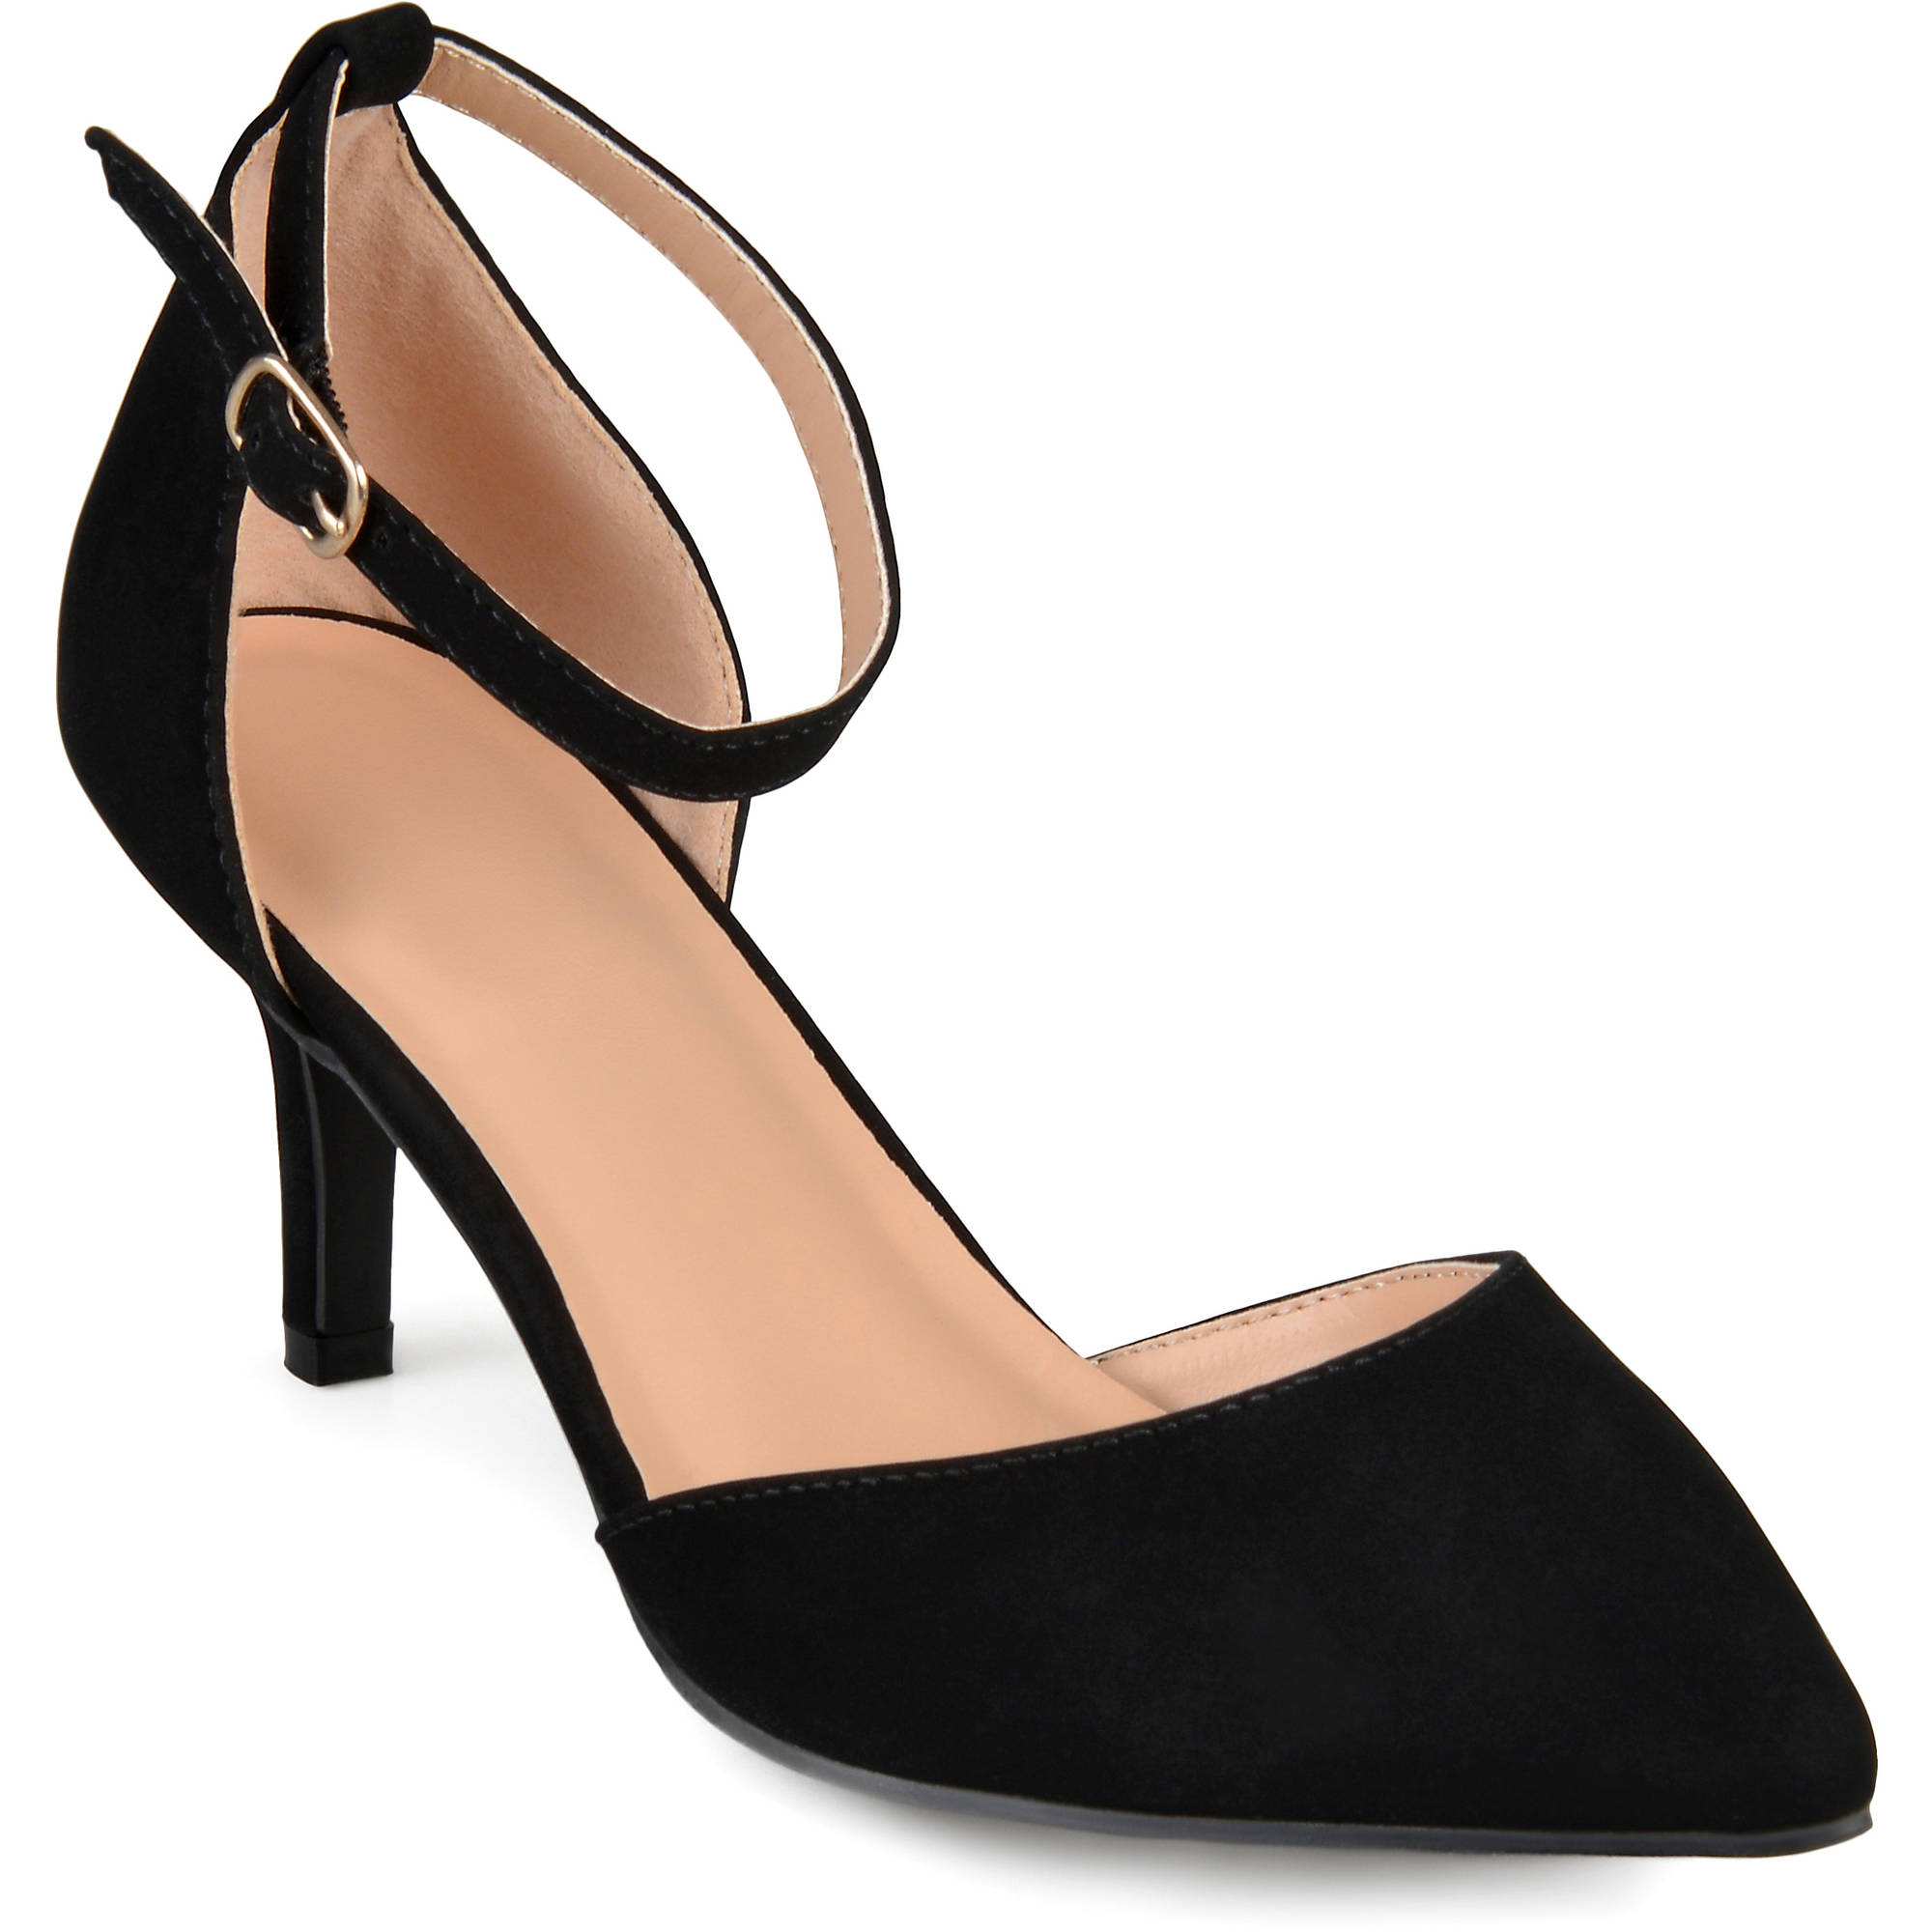 Brinley Co. Womens Ankle Strap Faux Suede Pumps